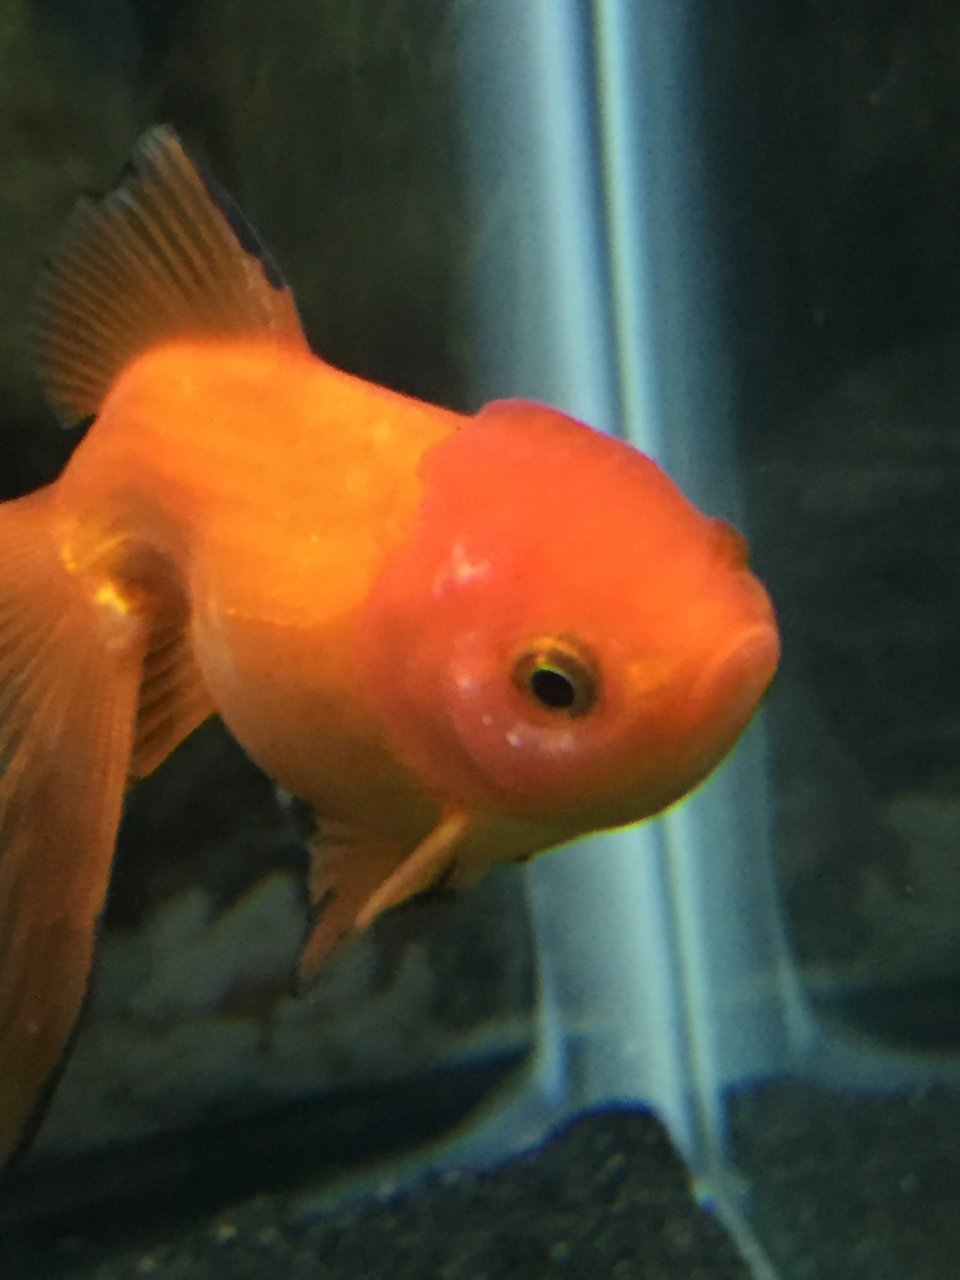 Fish in tank diseases - Fish In Tank Diseases